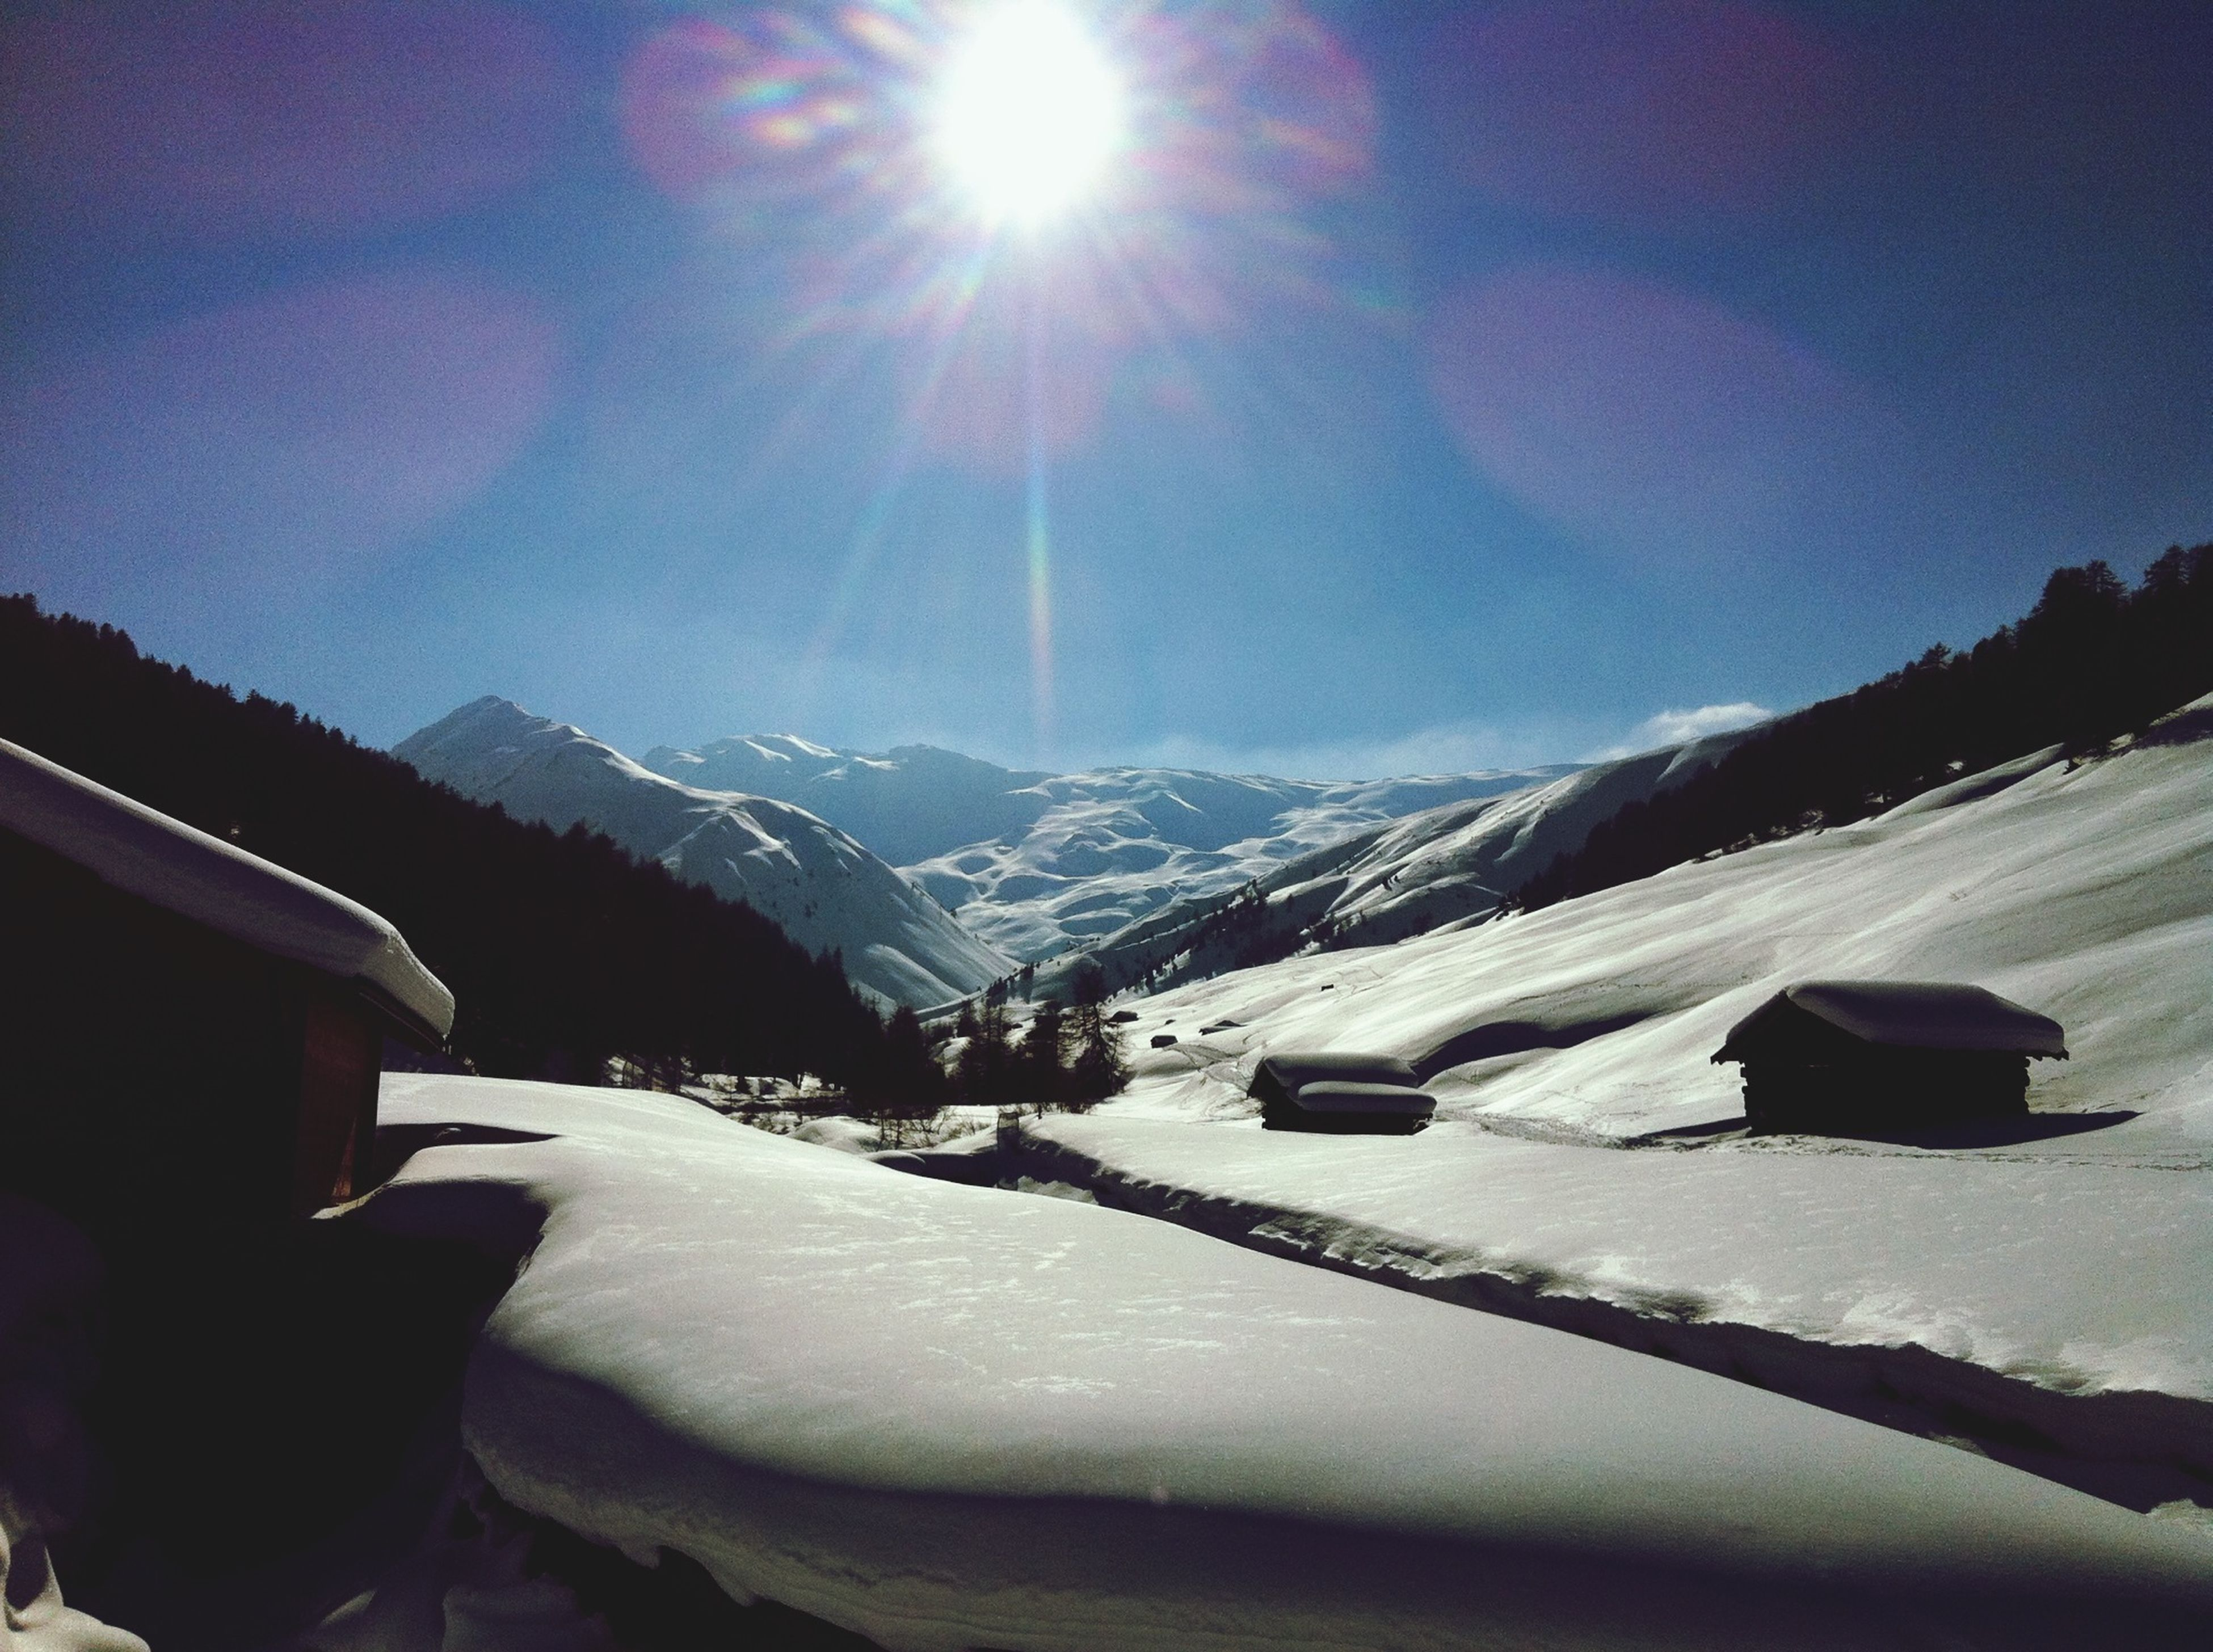 snow, winter, cold temperature, season, mountain, weather, sun, snowcapped mountain, covering, mountain range, sunlight, sunbeam, sky, frozen, tranquil scene, tranquility, nature, white color, landscape, beauty in nature